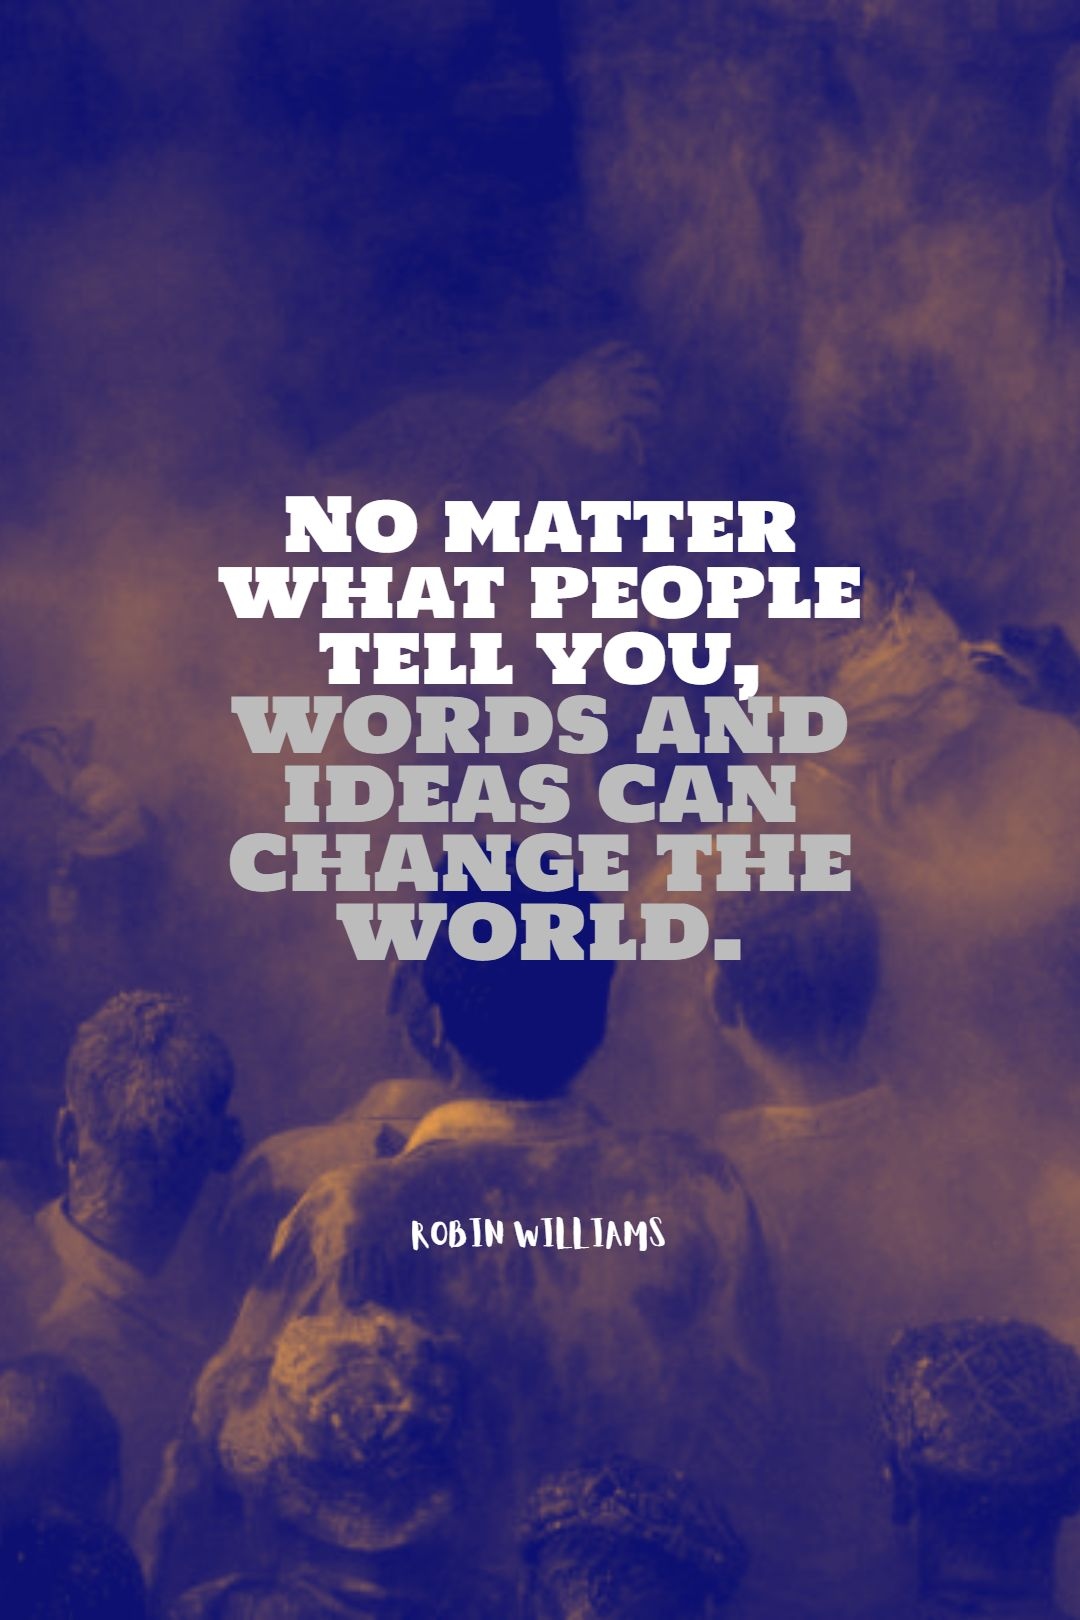 Quotes image of No matter what people tell you, words and ideas can change the world.